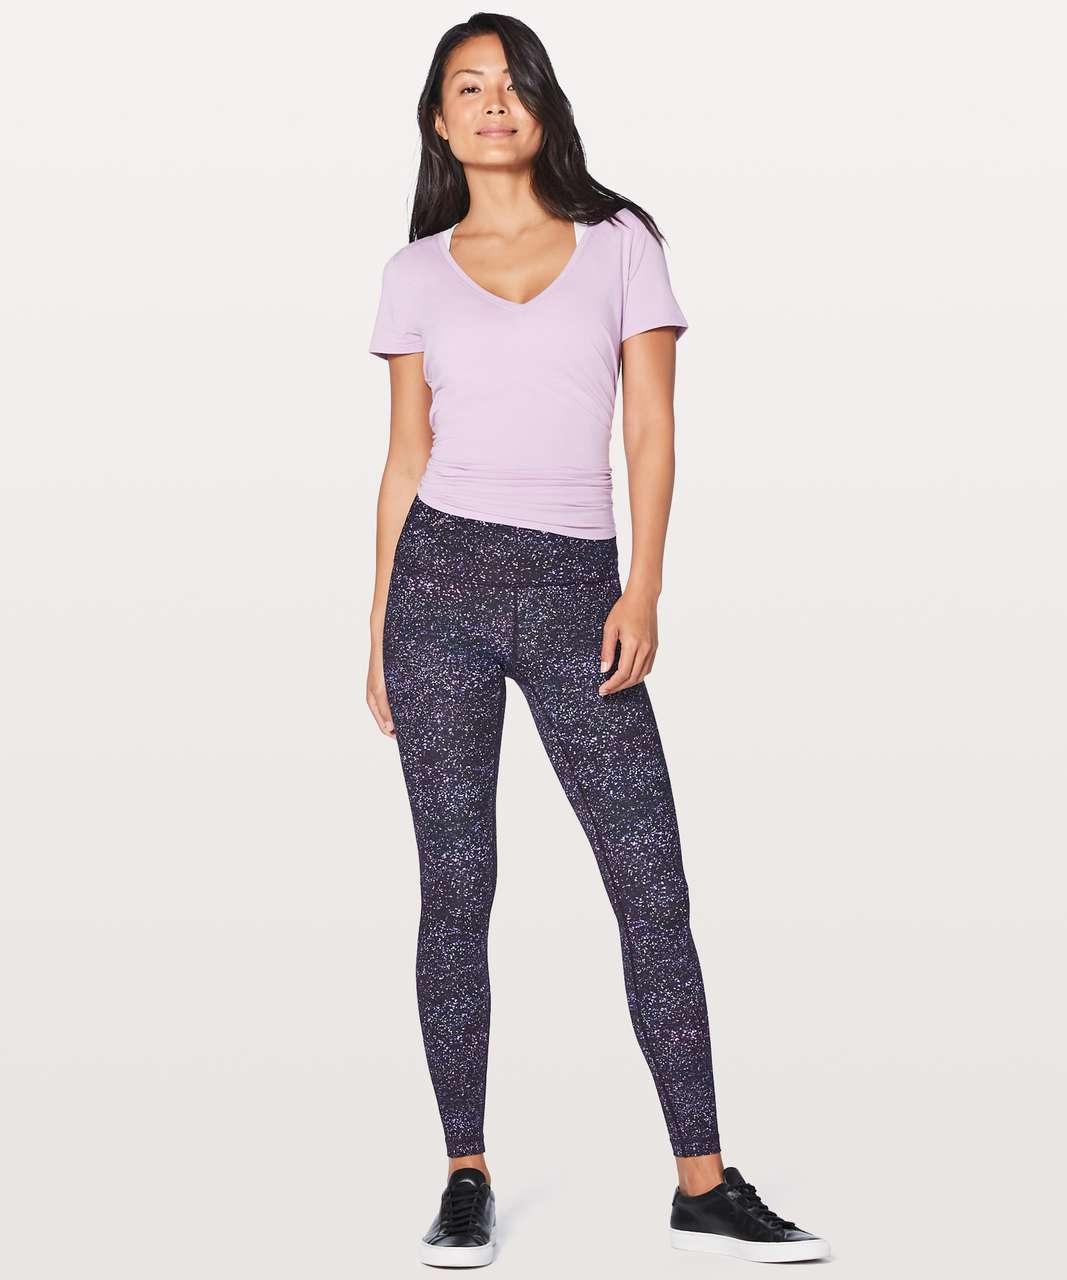 "Lululemon Wunder Under Hi-Rise Tight 28"" - Crystalline Multi"